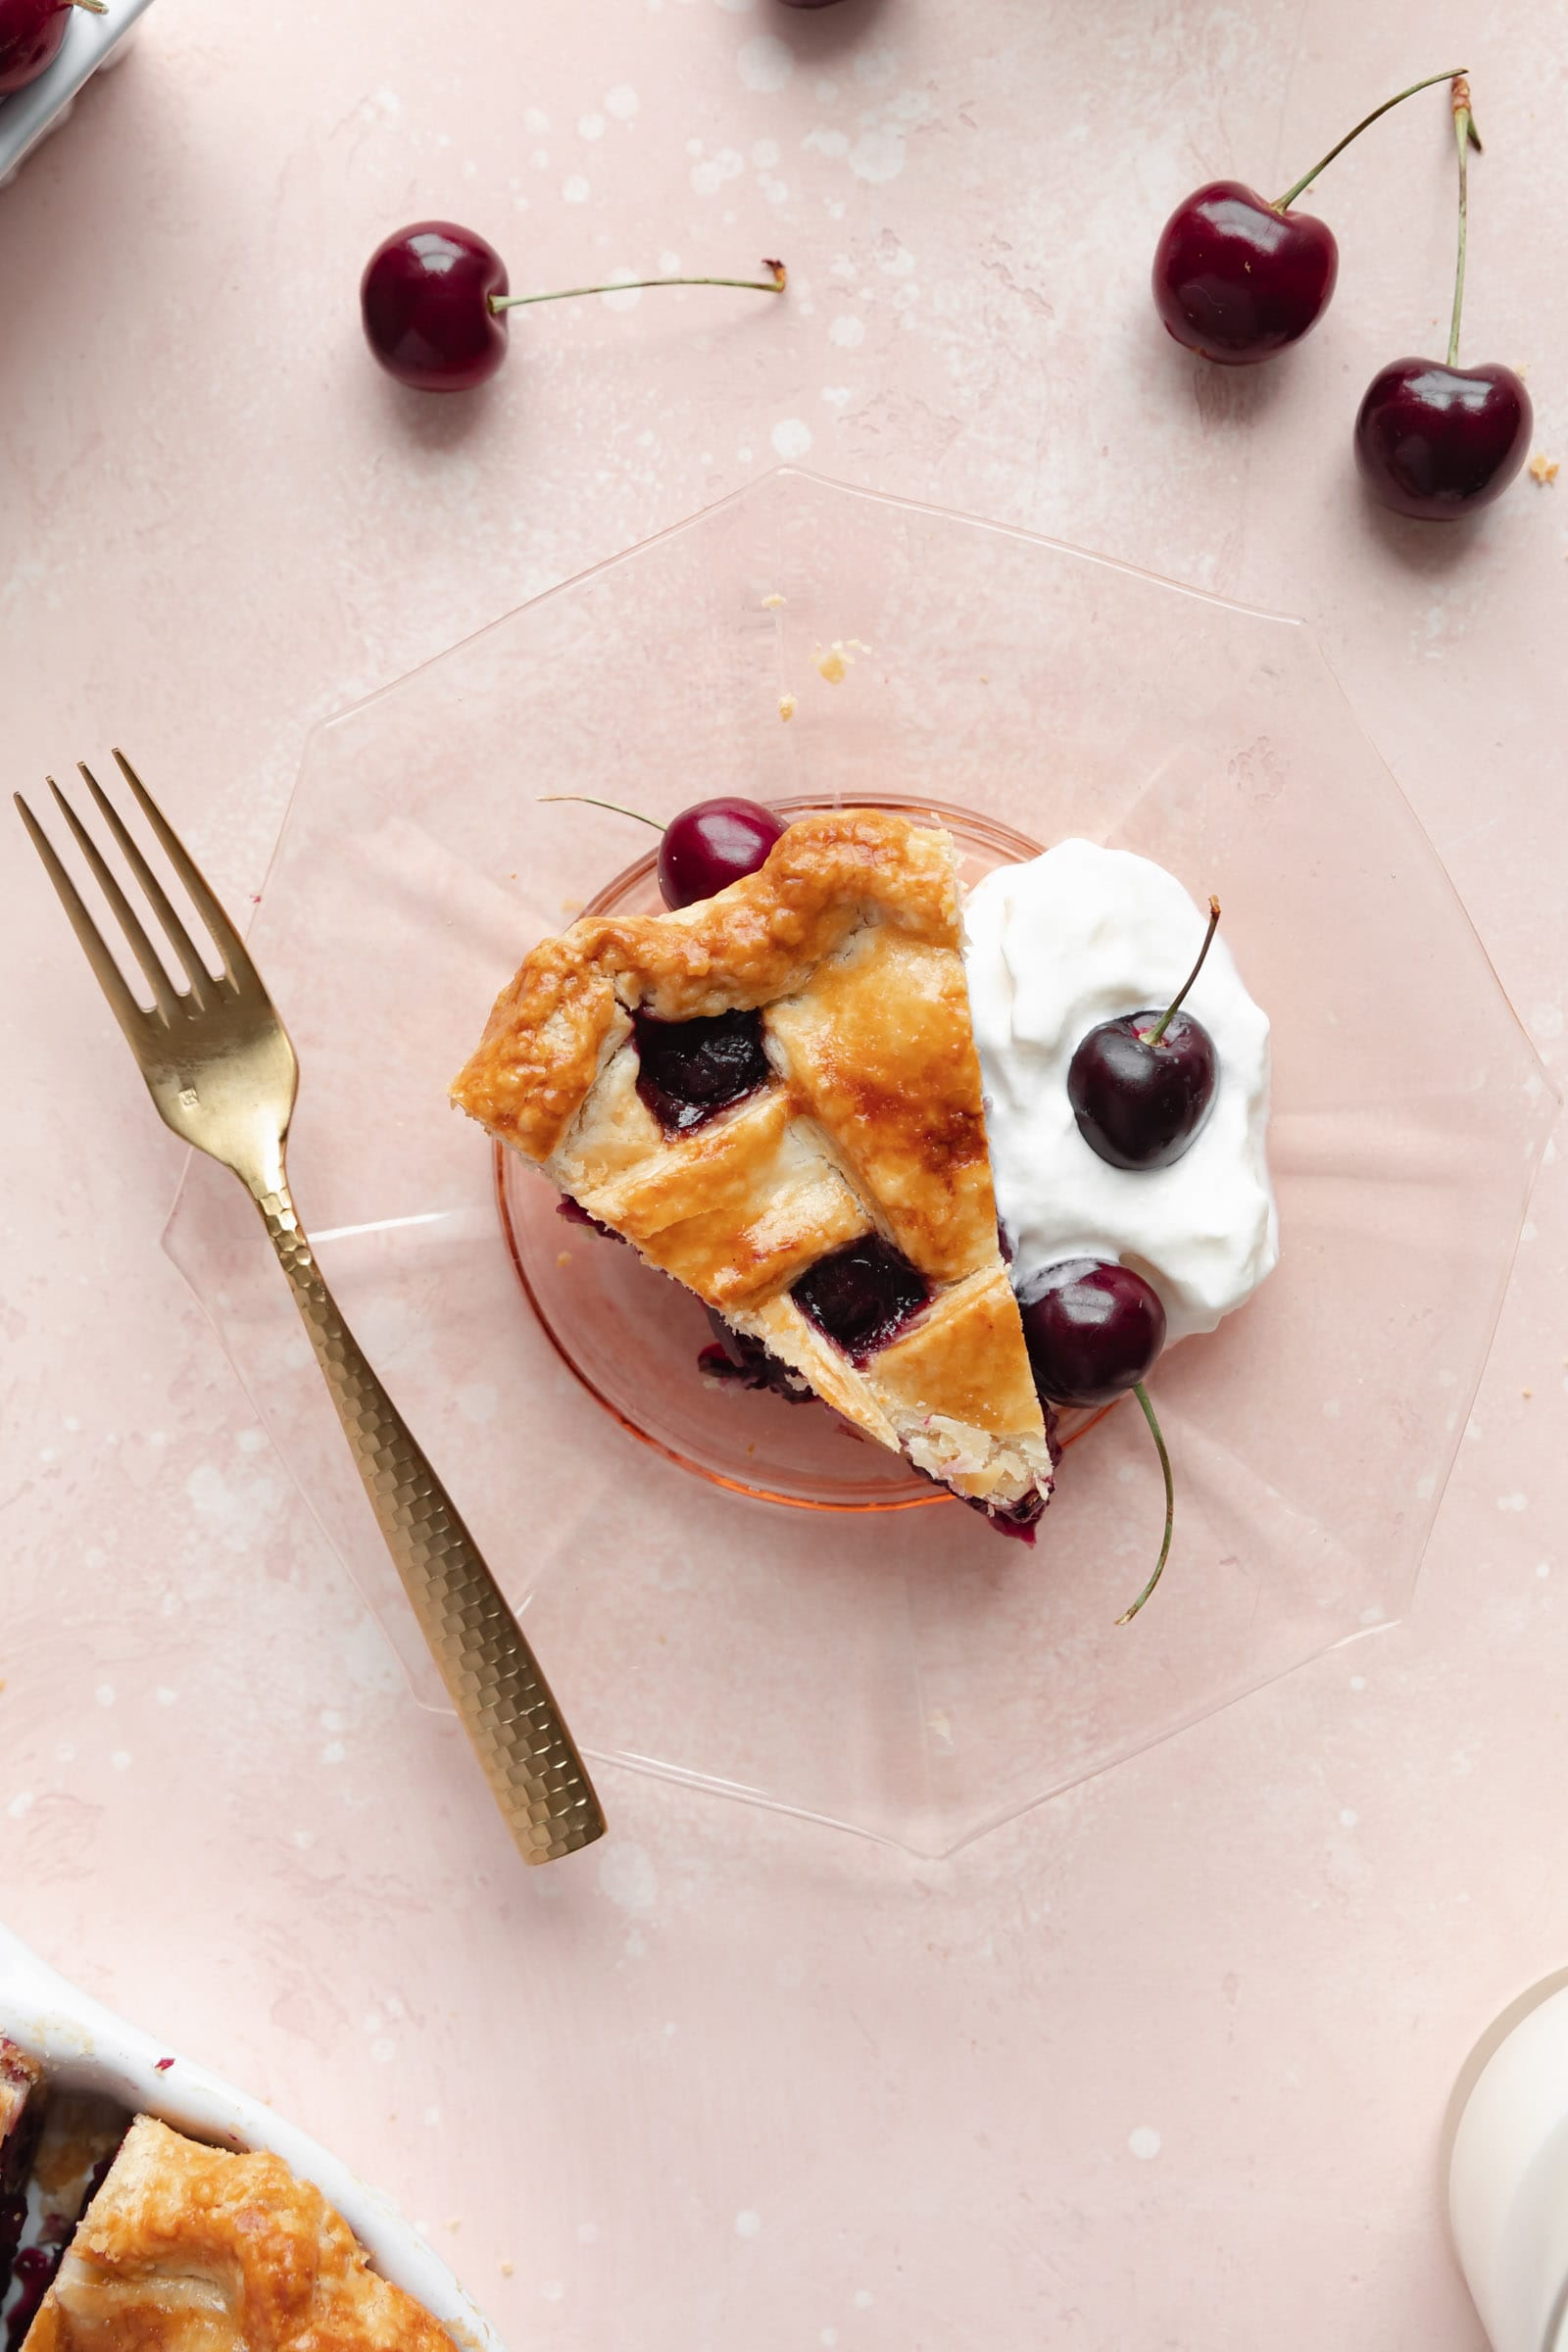 slice of cherry pie with whipped cream